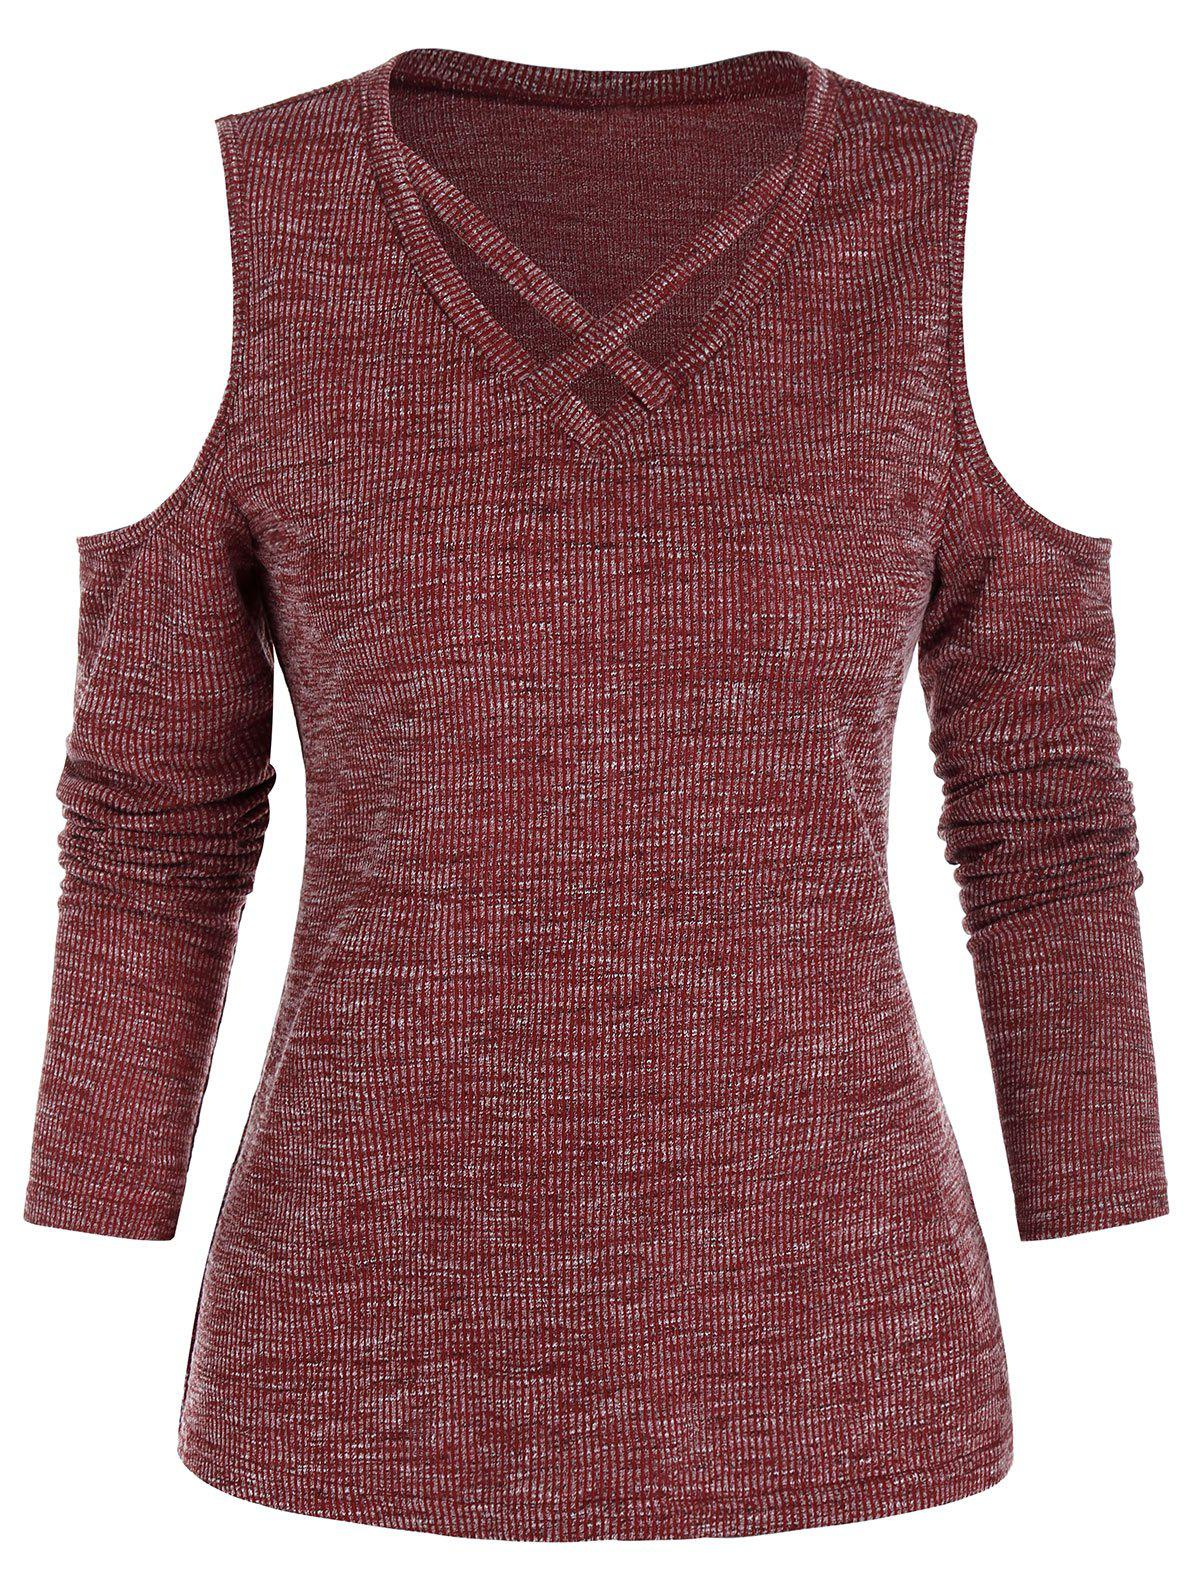 Cold Shoulder Criss-cross Ribbed Heathered T-shirt - RED WINE 3XL